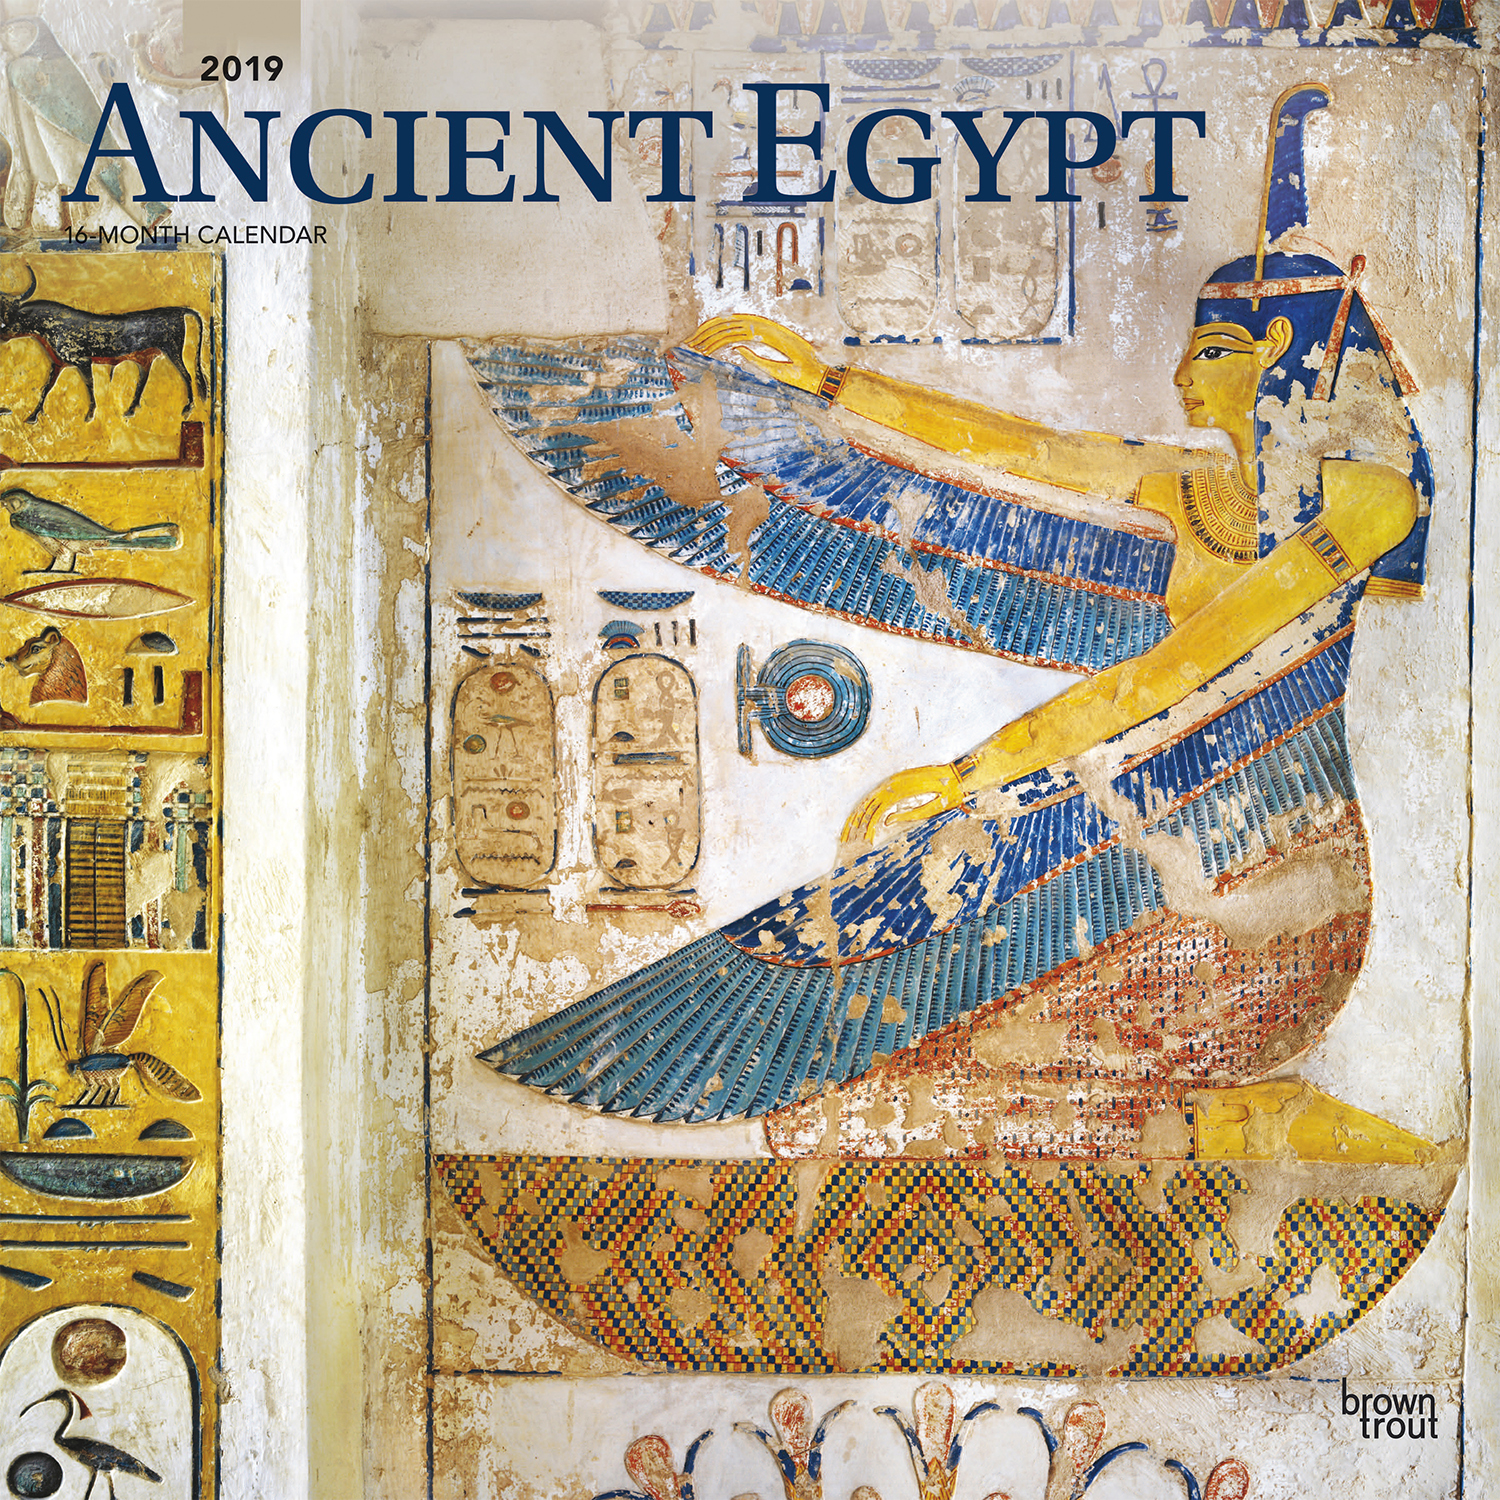 Ancient Egypt 2019 calendar